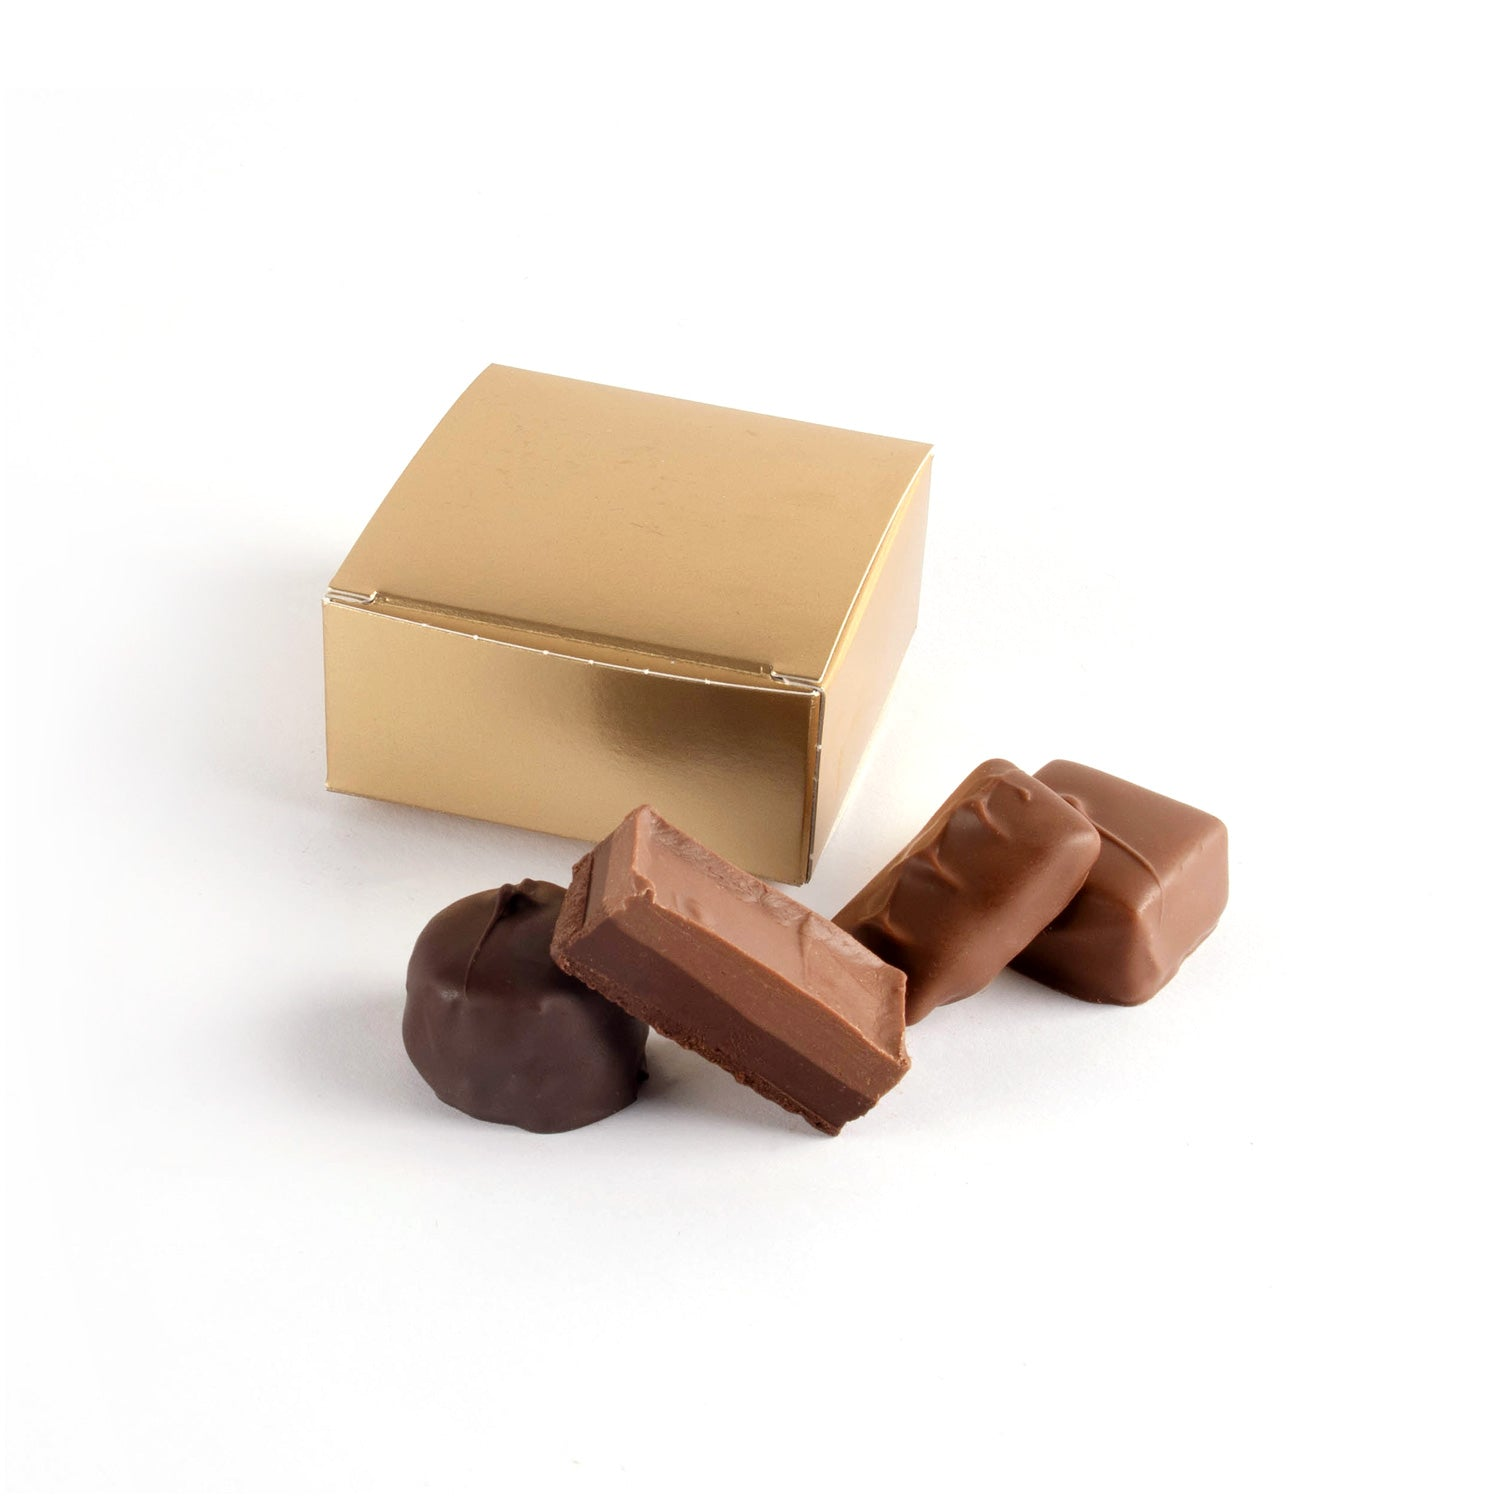 Product photo of square box that fits 4 chocolates